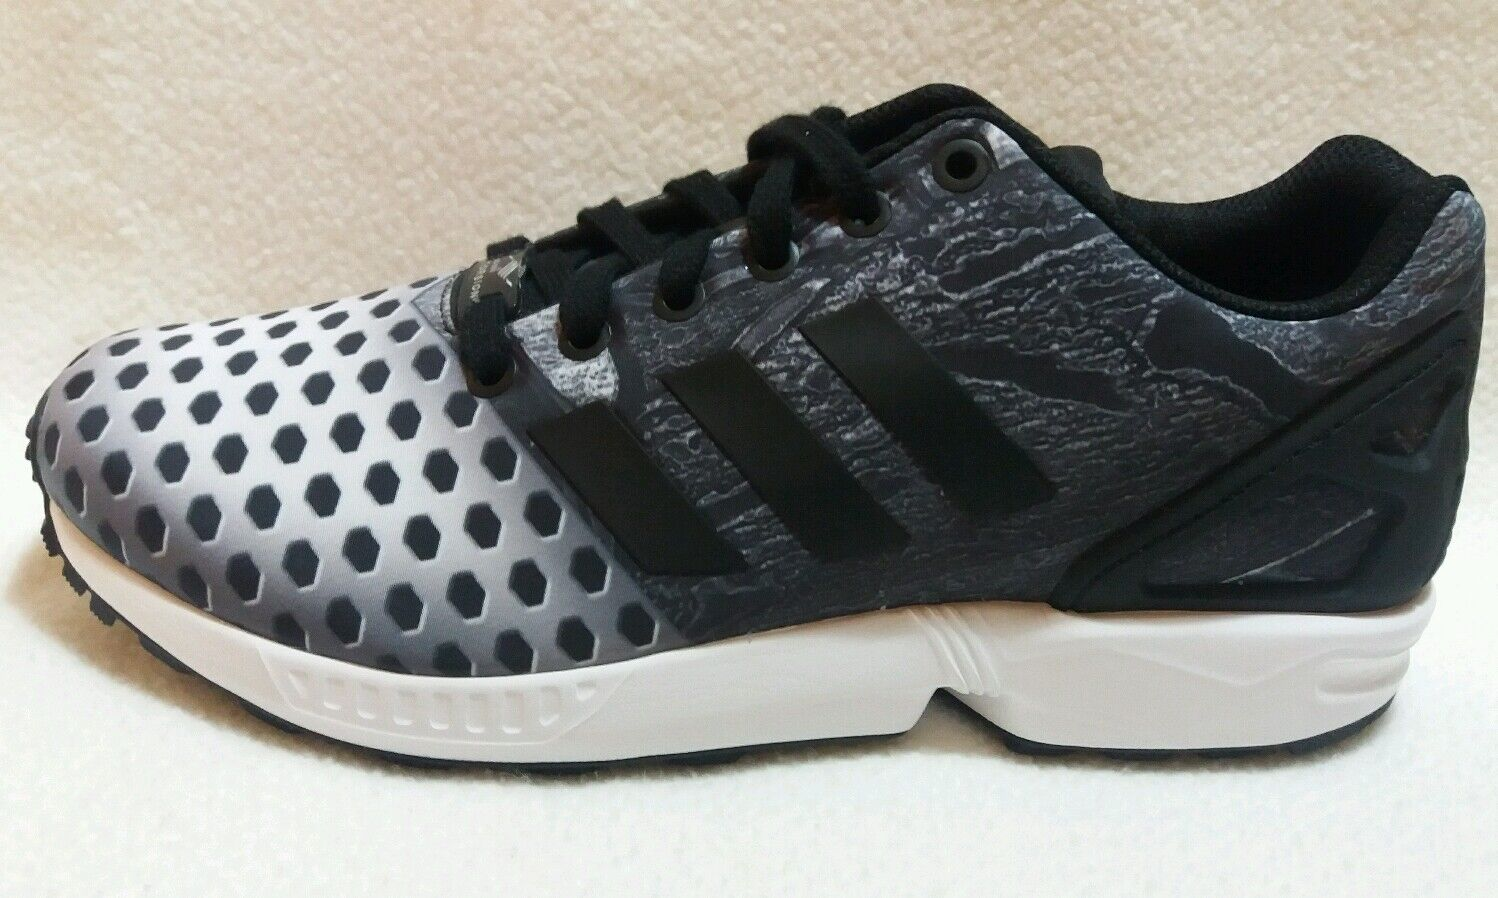 Adidas zx Flux Gray Negro / Blanco / Gray Flux Hombre Tamaño Athletic Zapatos originales 4dd9fd